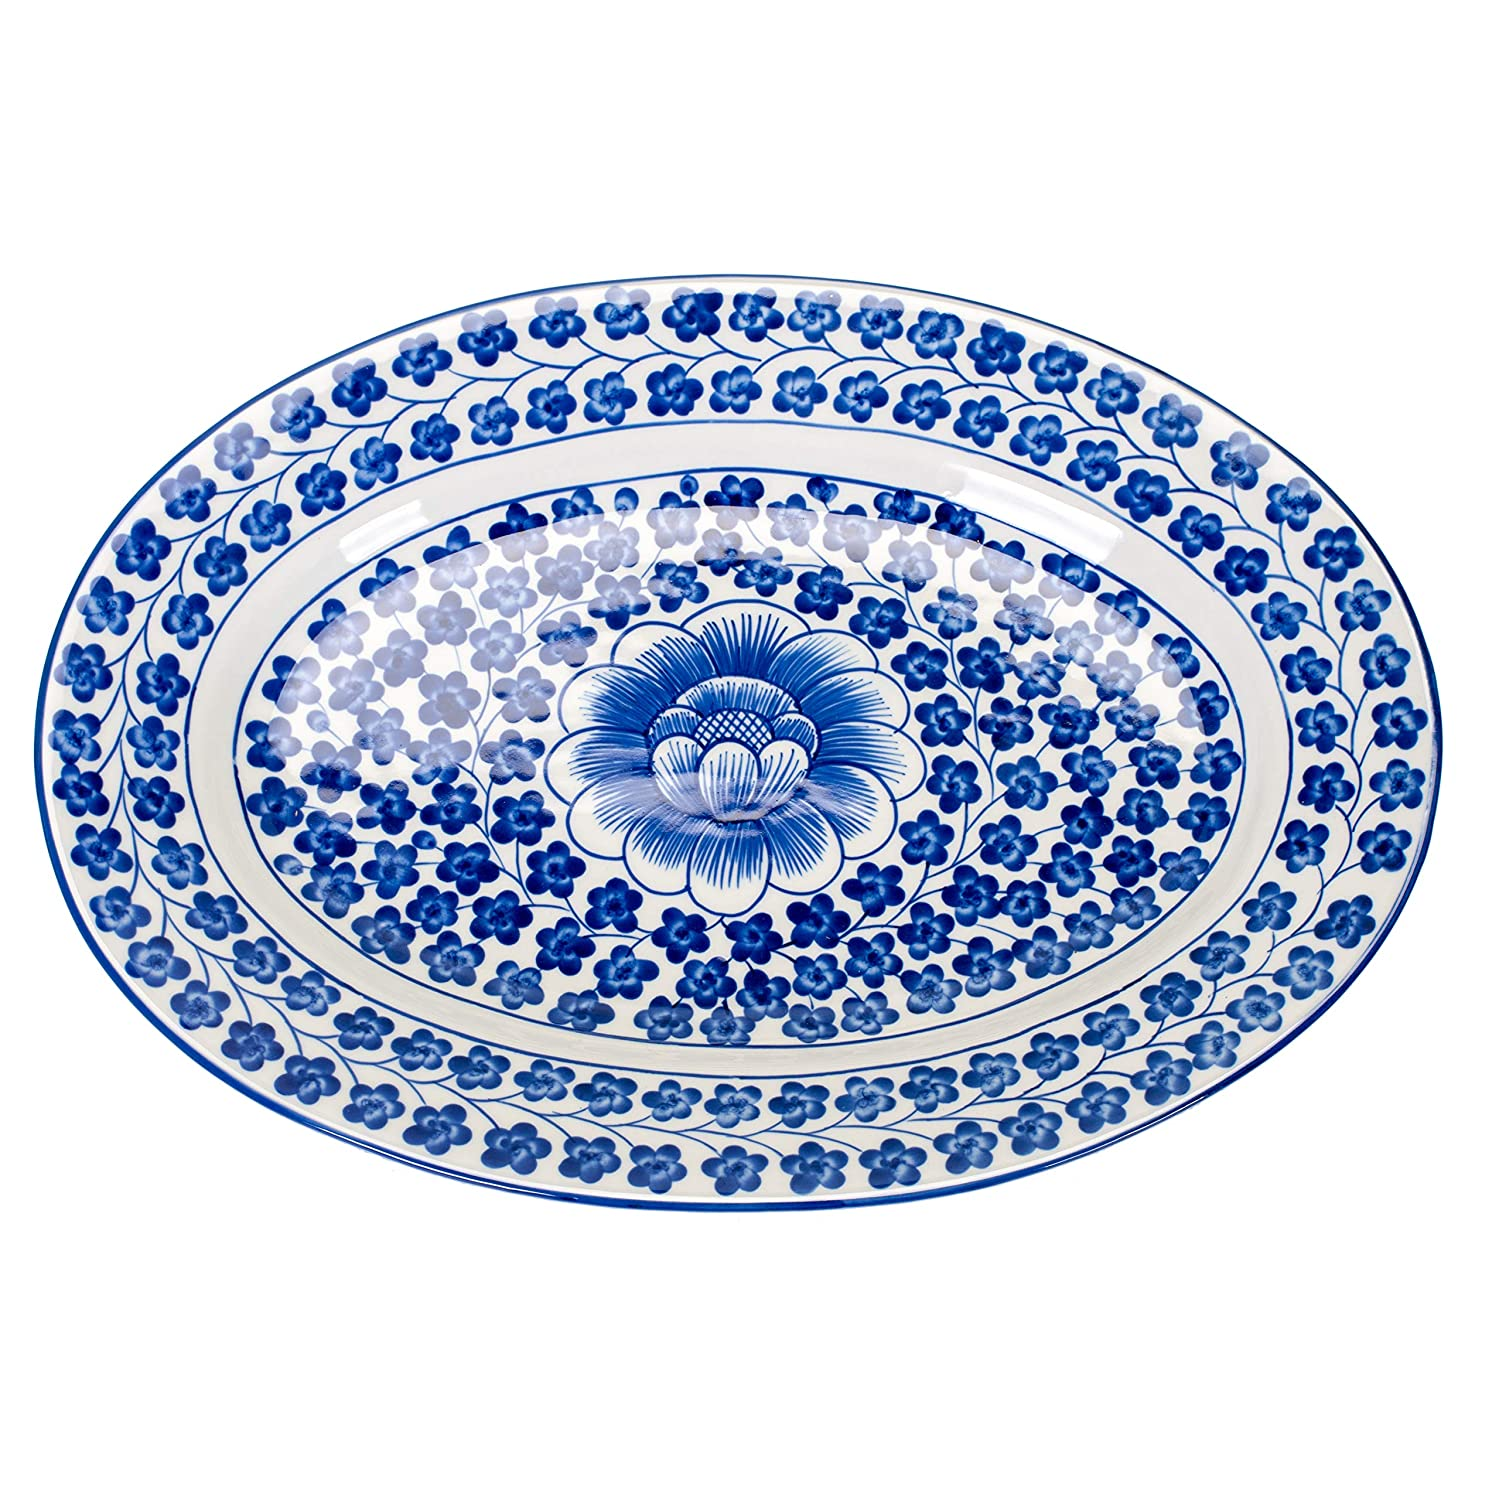 Sea Island Imports Elegant Porcelain Serving Platter with Blue and White Hand Painted Coriander Pattern Inc.